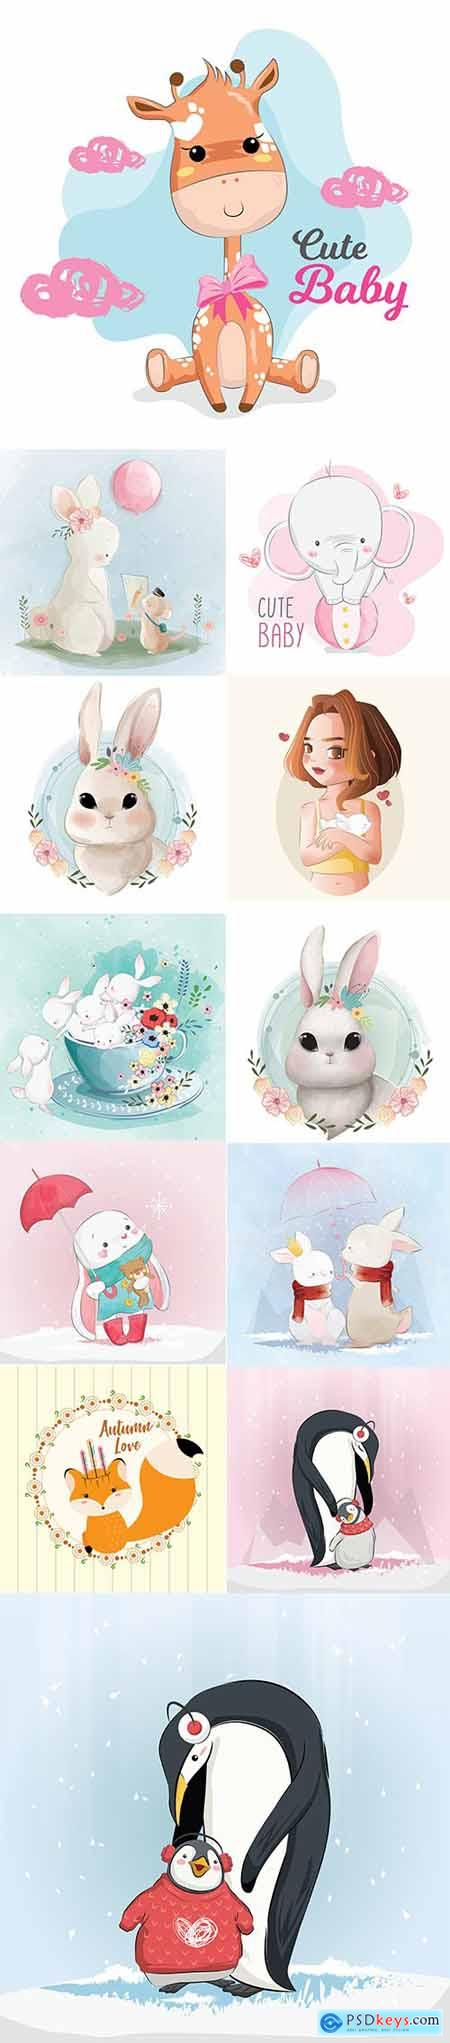 Set of Hand Draw Watercolor Adorable Animals Illustrations Vol 3